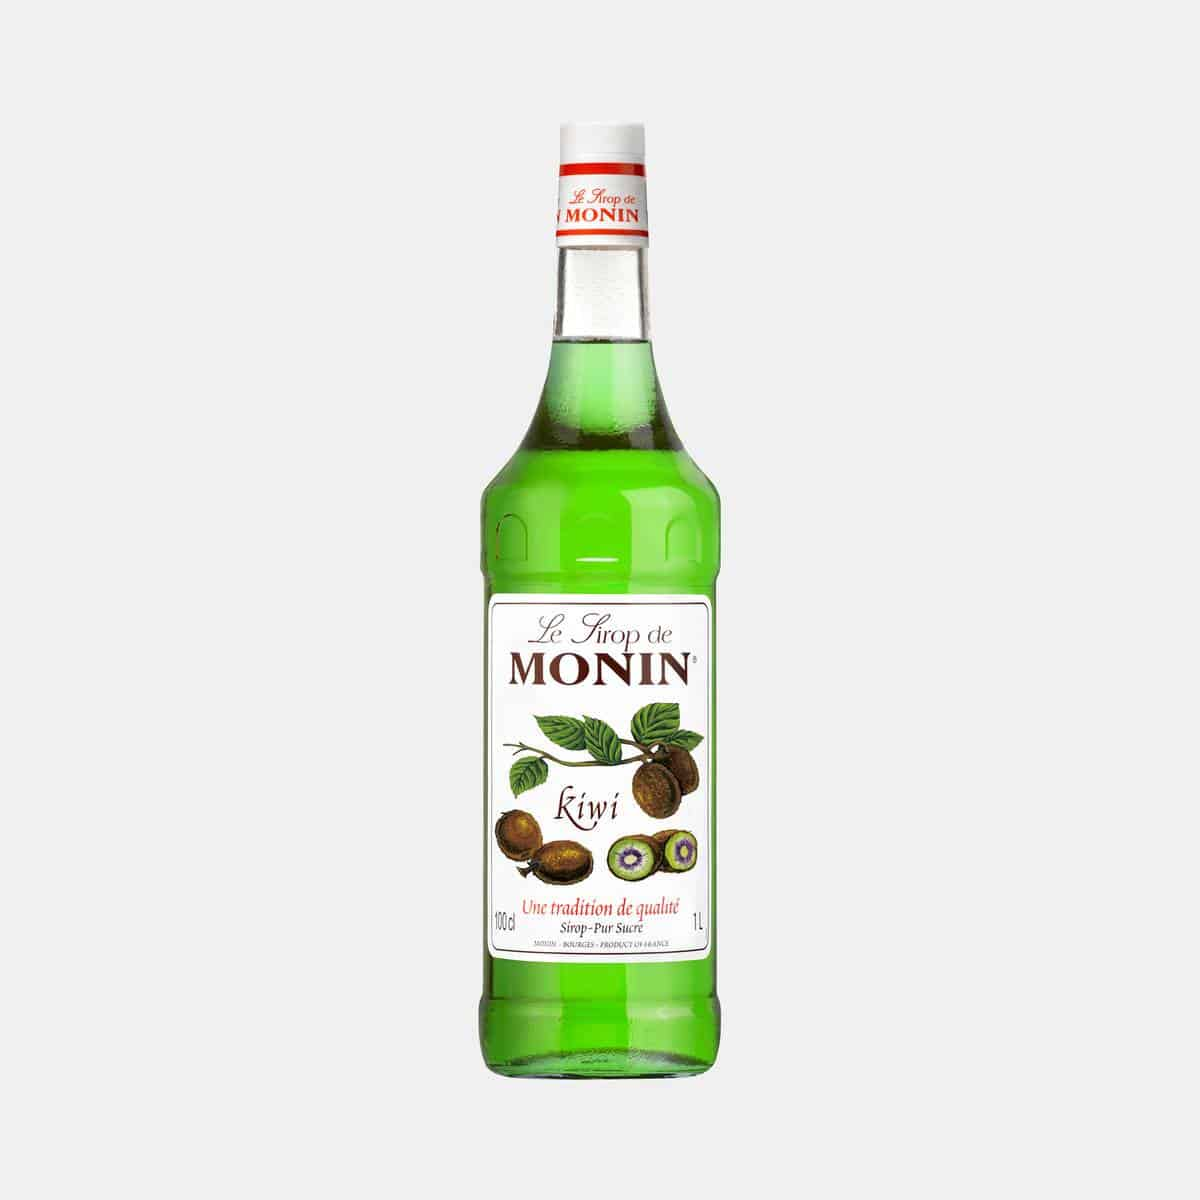 Monin Kiwi Syrup 1 Liter Glass Bottle